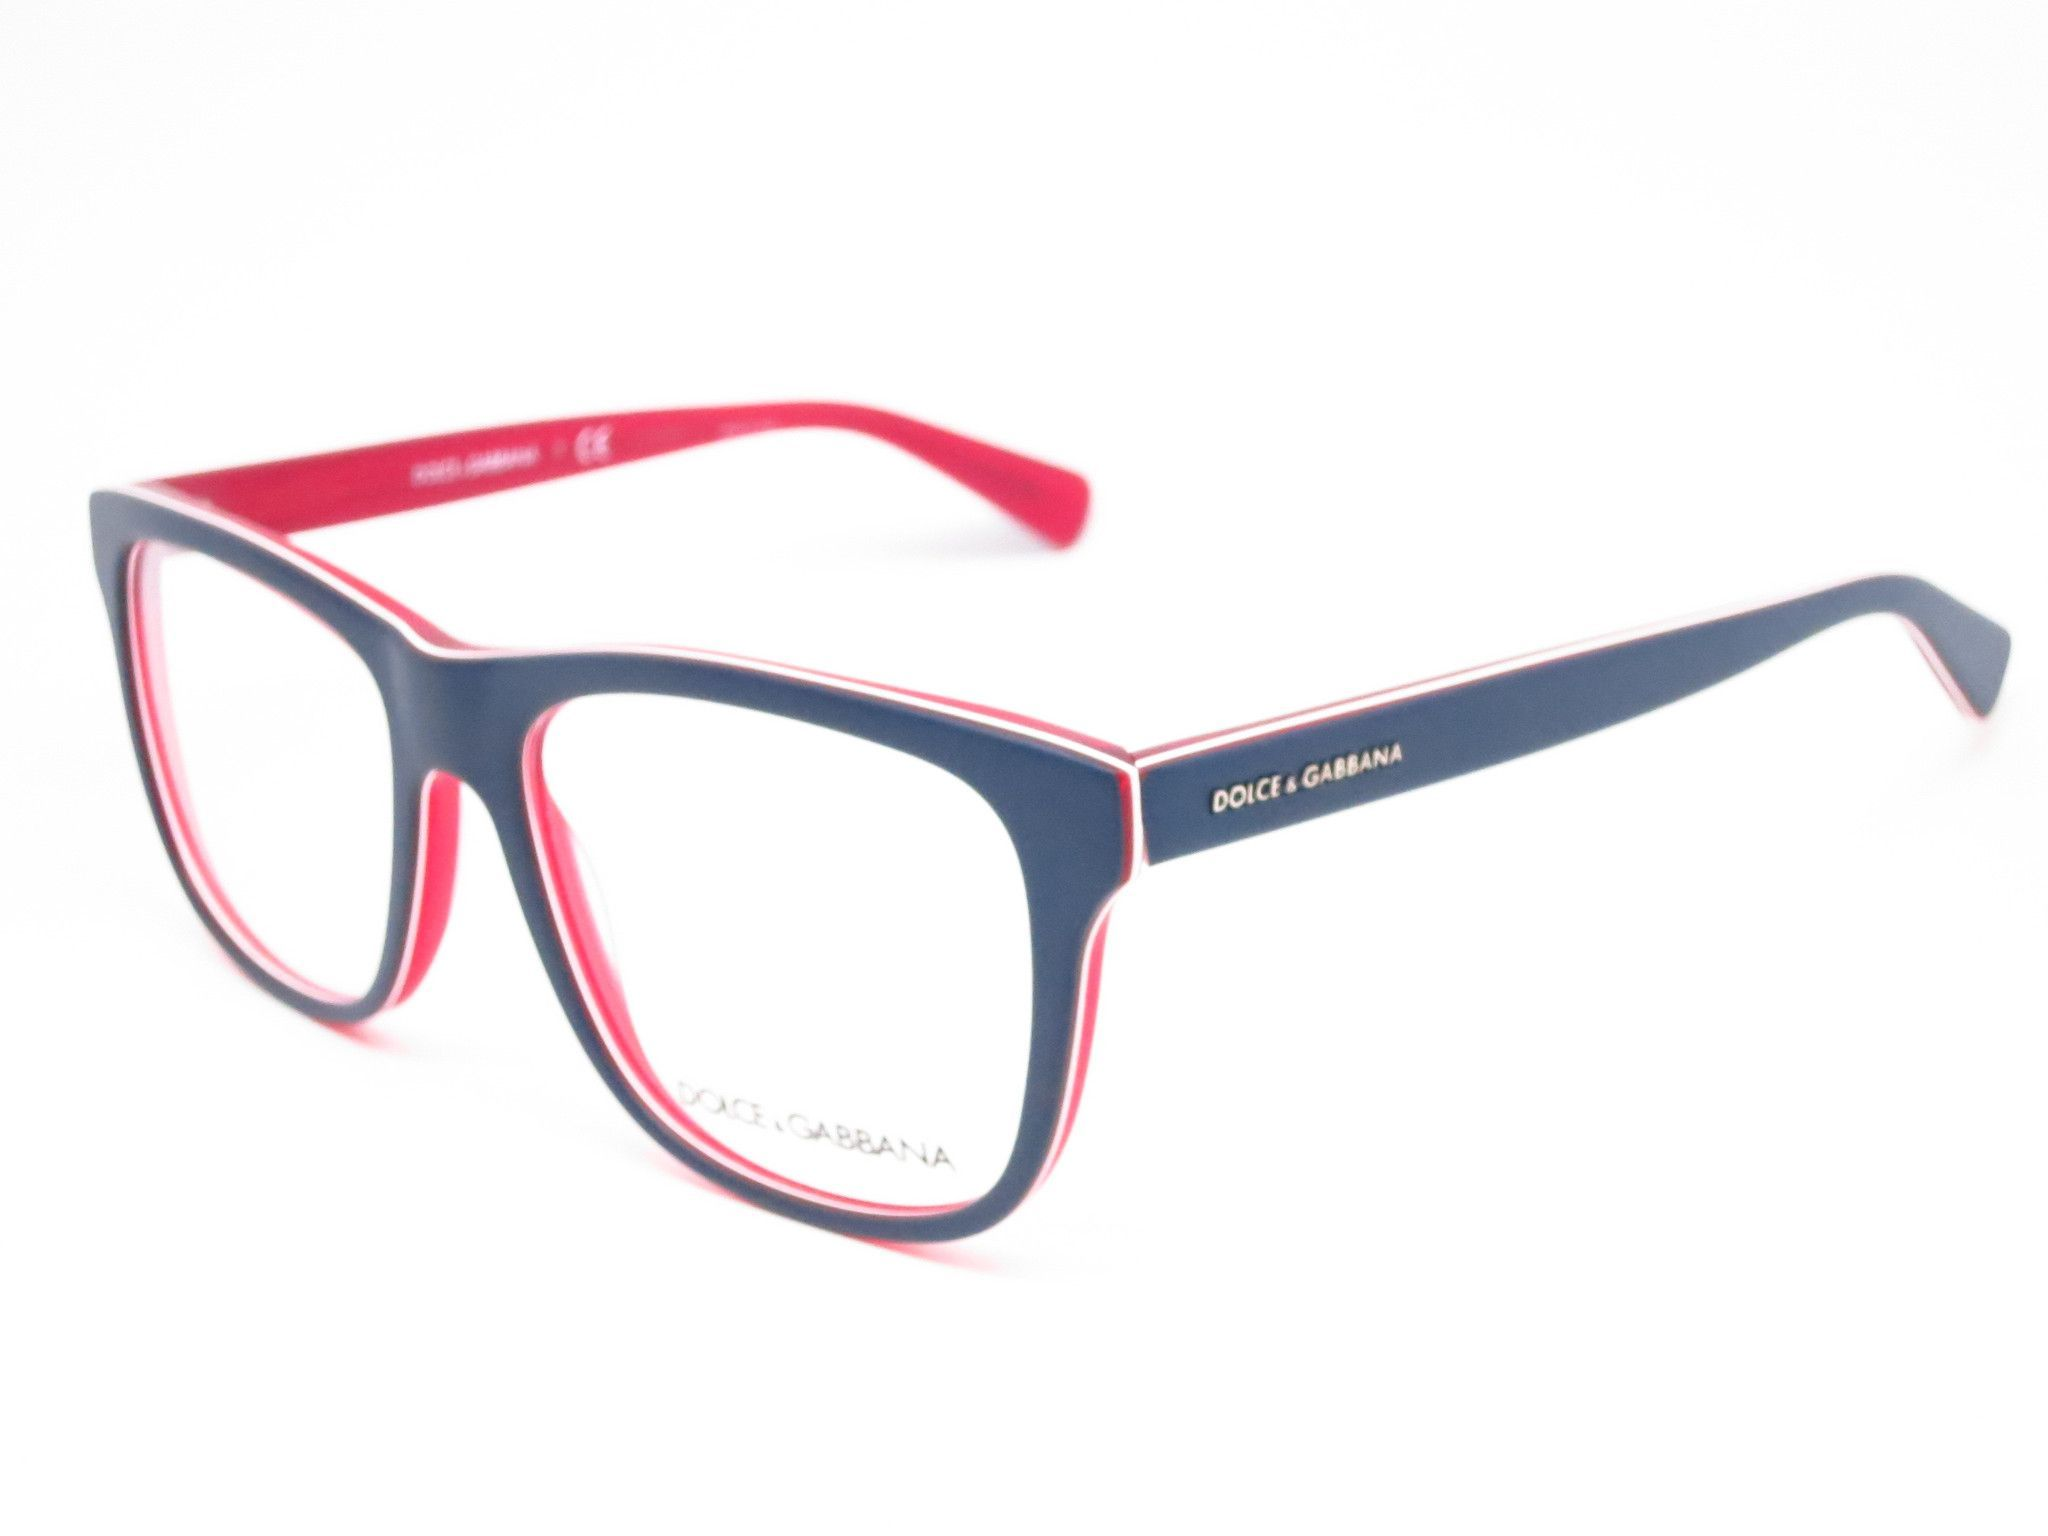 06aaacc917a Dolce   Gabbana DG 3206 Product Details Brand Name   Dolce   Gabbana Model  Number   DG 3206 - Color Code   1872 Frame Color   Top Blue on Matte Red  Lens ...